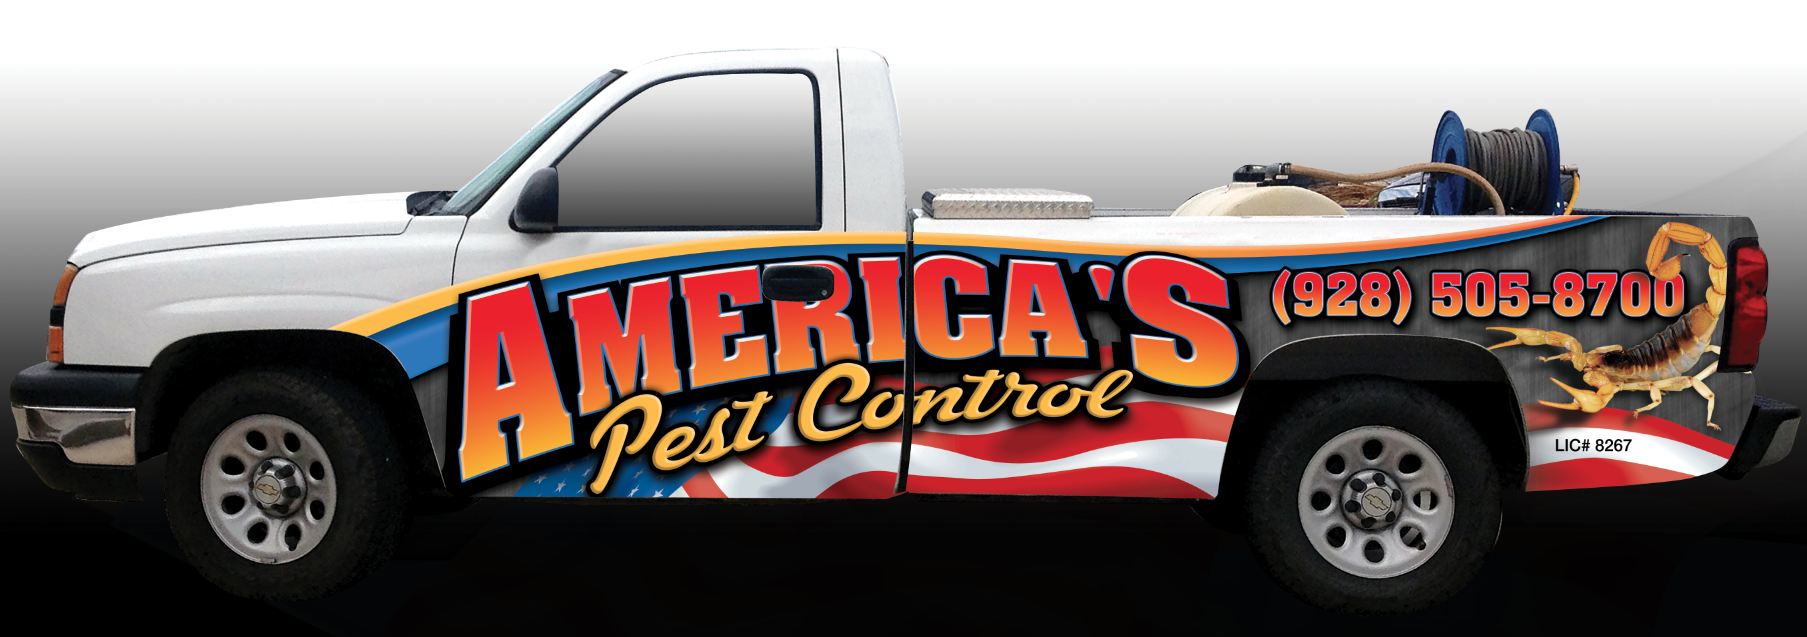 Lake Havasu Pest Control